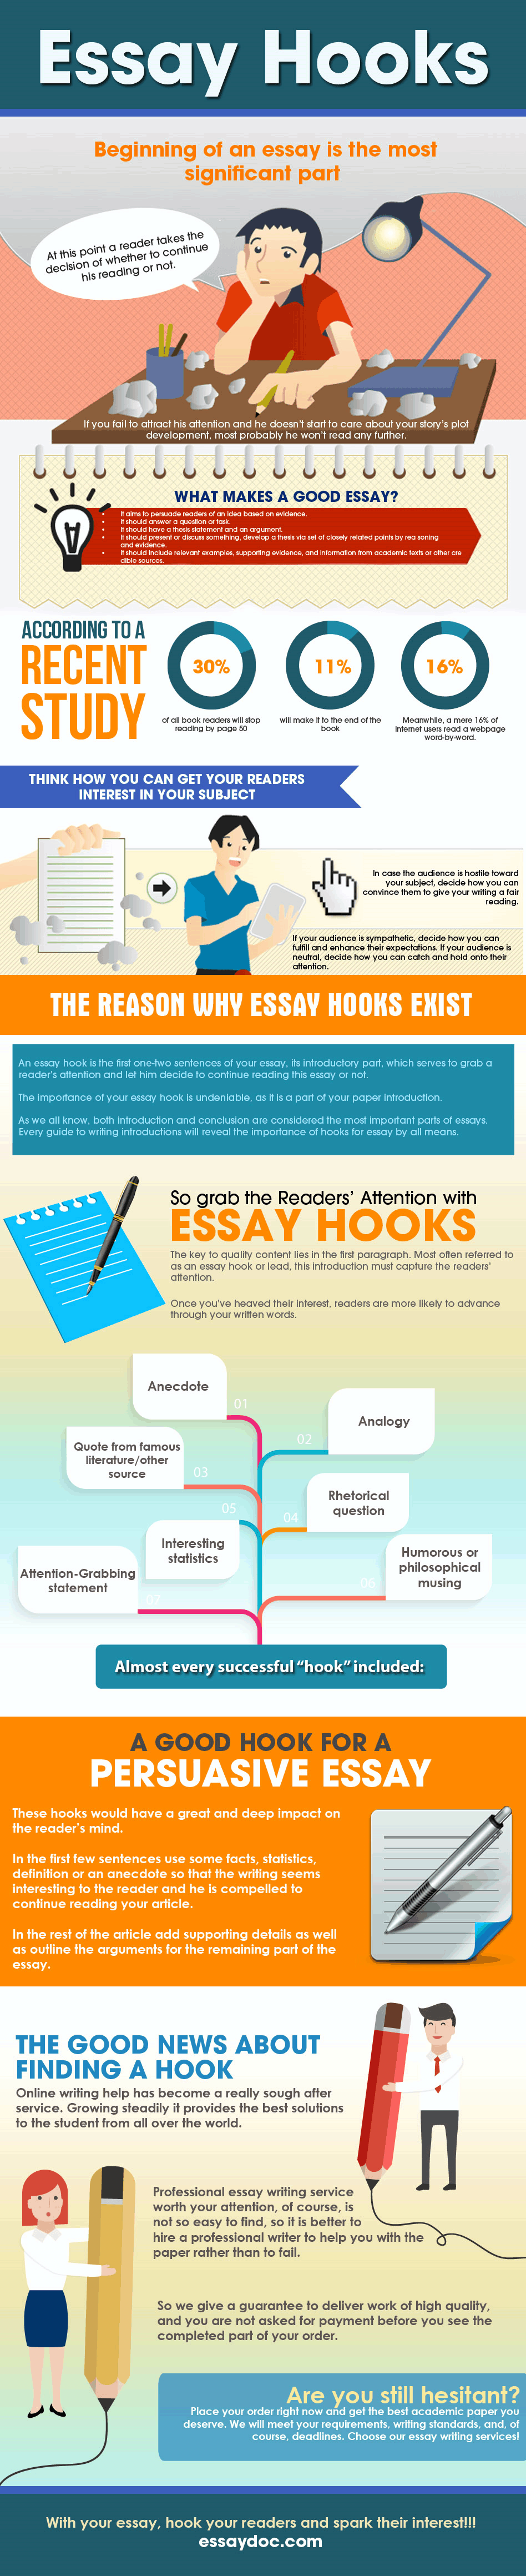 good attention grabbers college essays essay hook example essay hook example hooks and essay hook example essay hook example hooks and